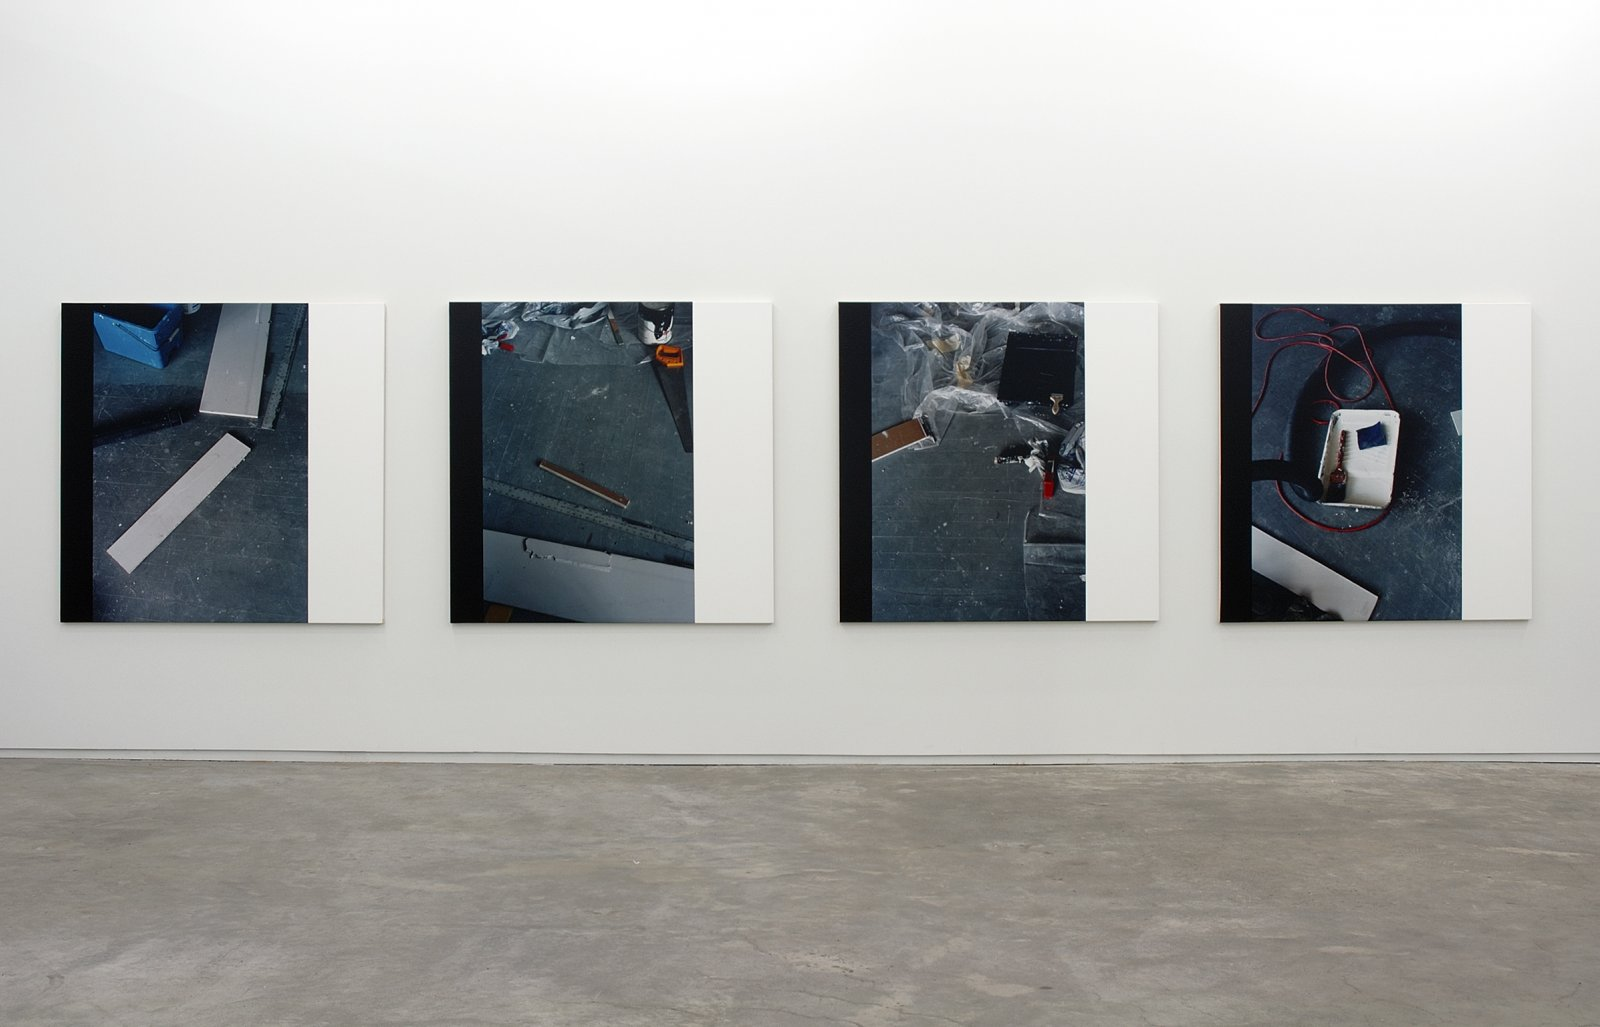 Ian Wallace,Constellations (With Black) I, II, III, IV, 2006, photolaminate with acrylic on canvas,60 x 60 in. (153 x 153 cm)